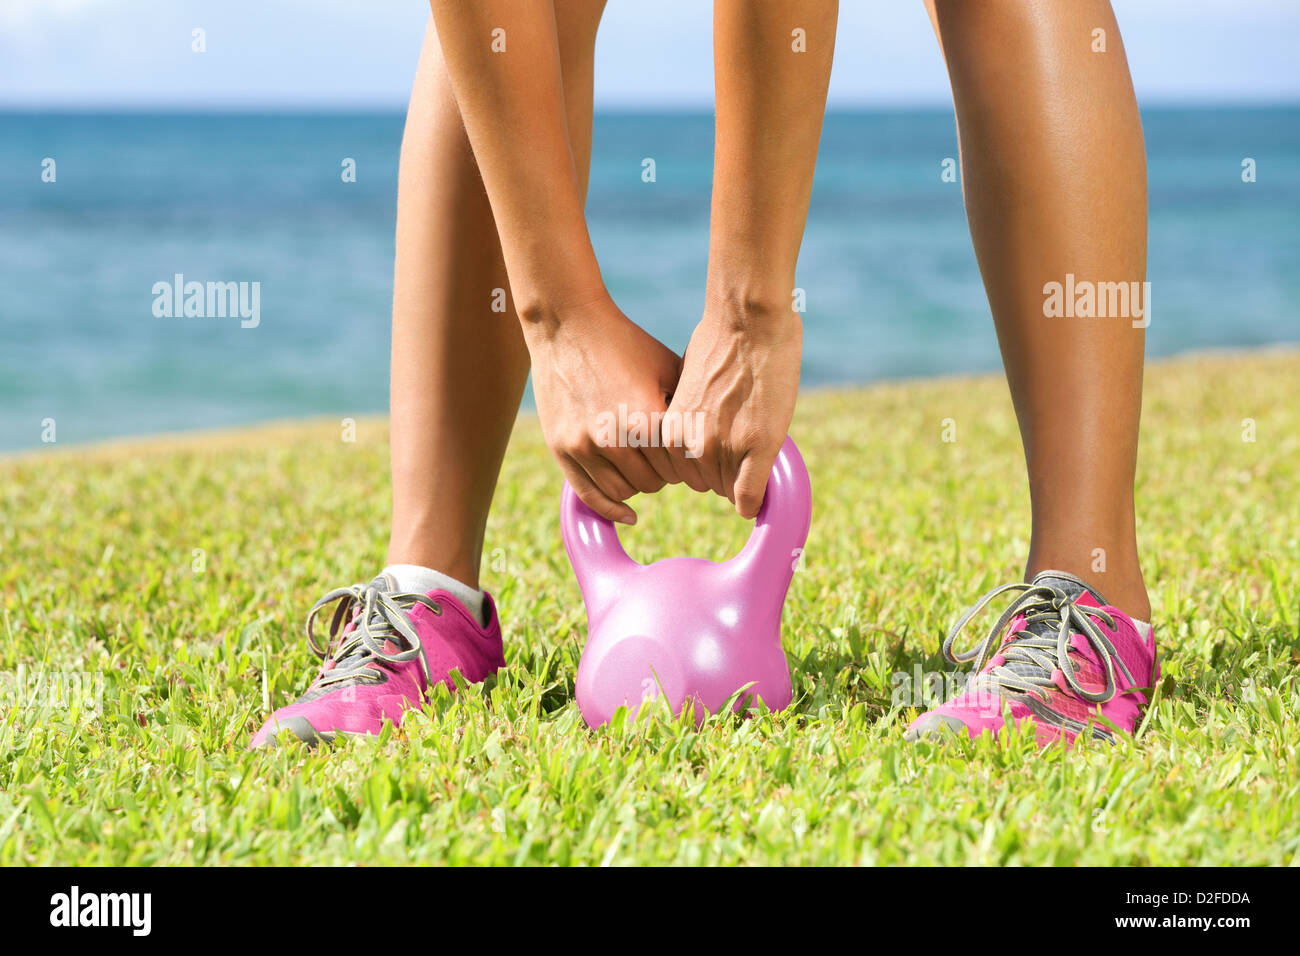 Low section of young fit woman lifting Kettlebell during crossfit exercise outside - Stock Image